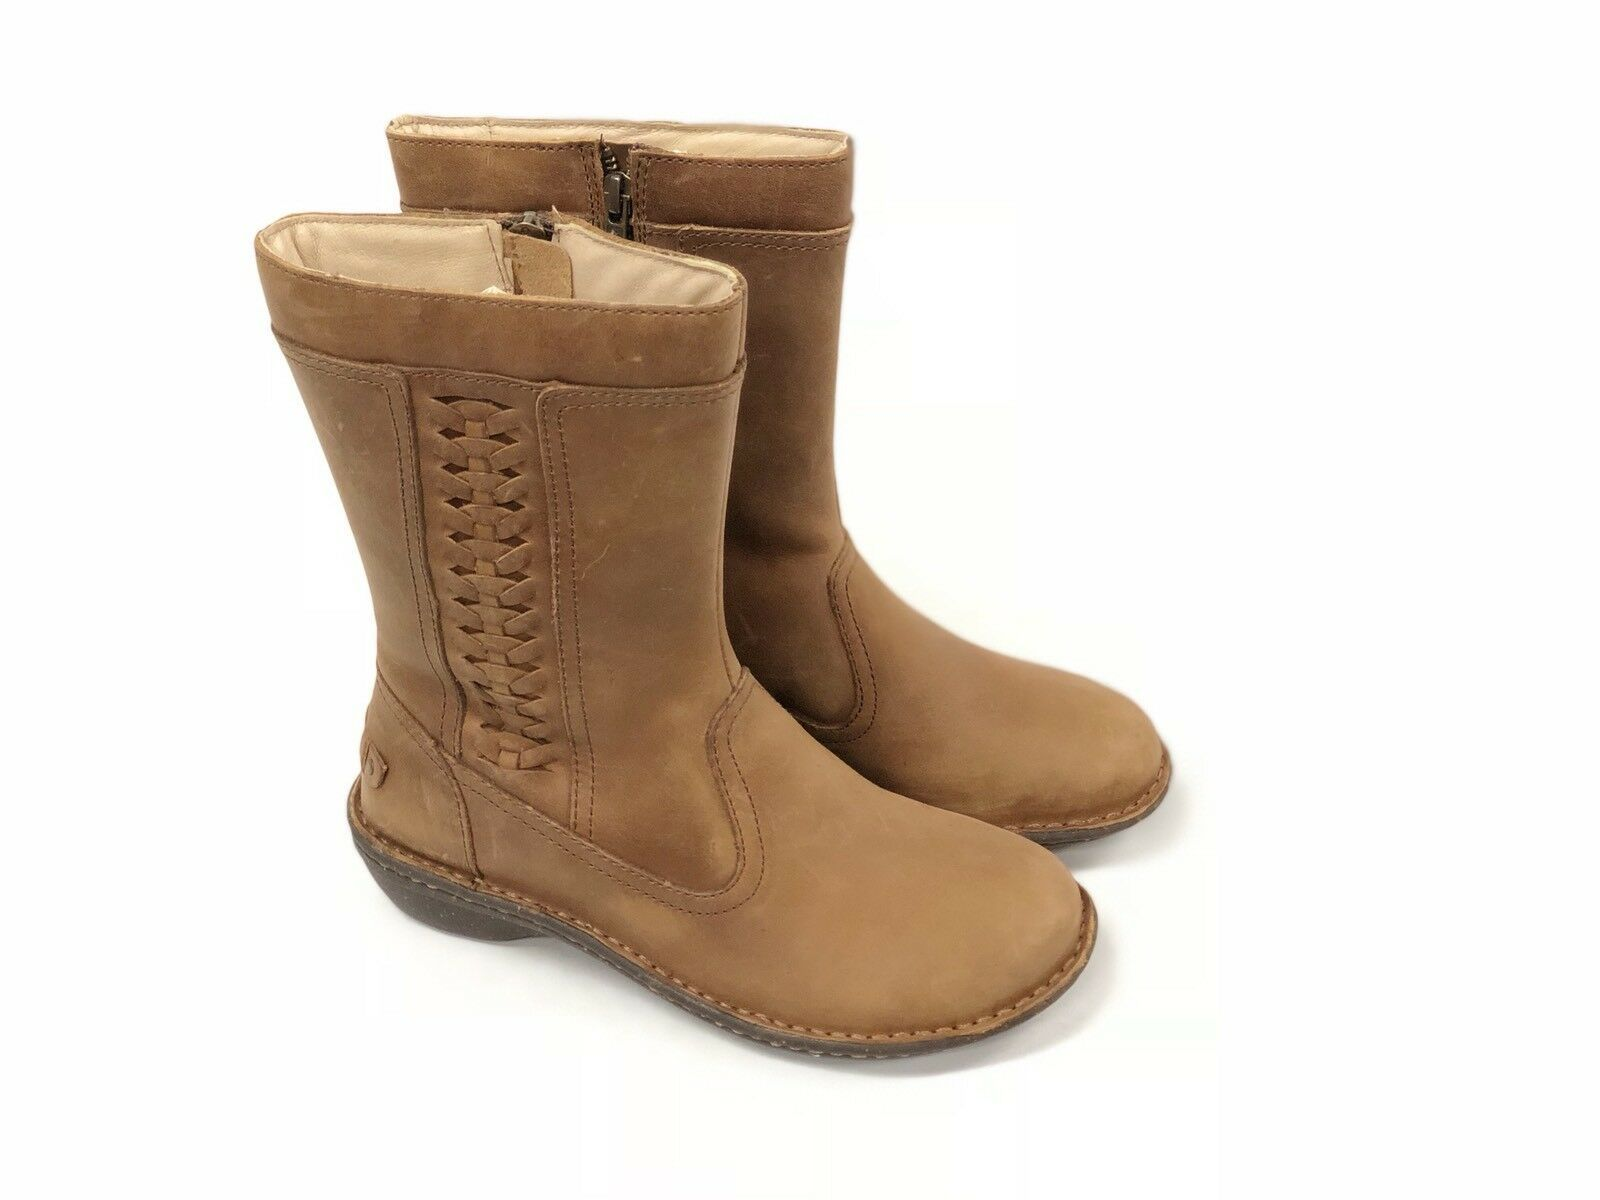 49b3c17f44d UGG Australia 1006083 Kaleen Leather Boots and 50 similar items